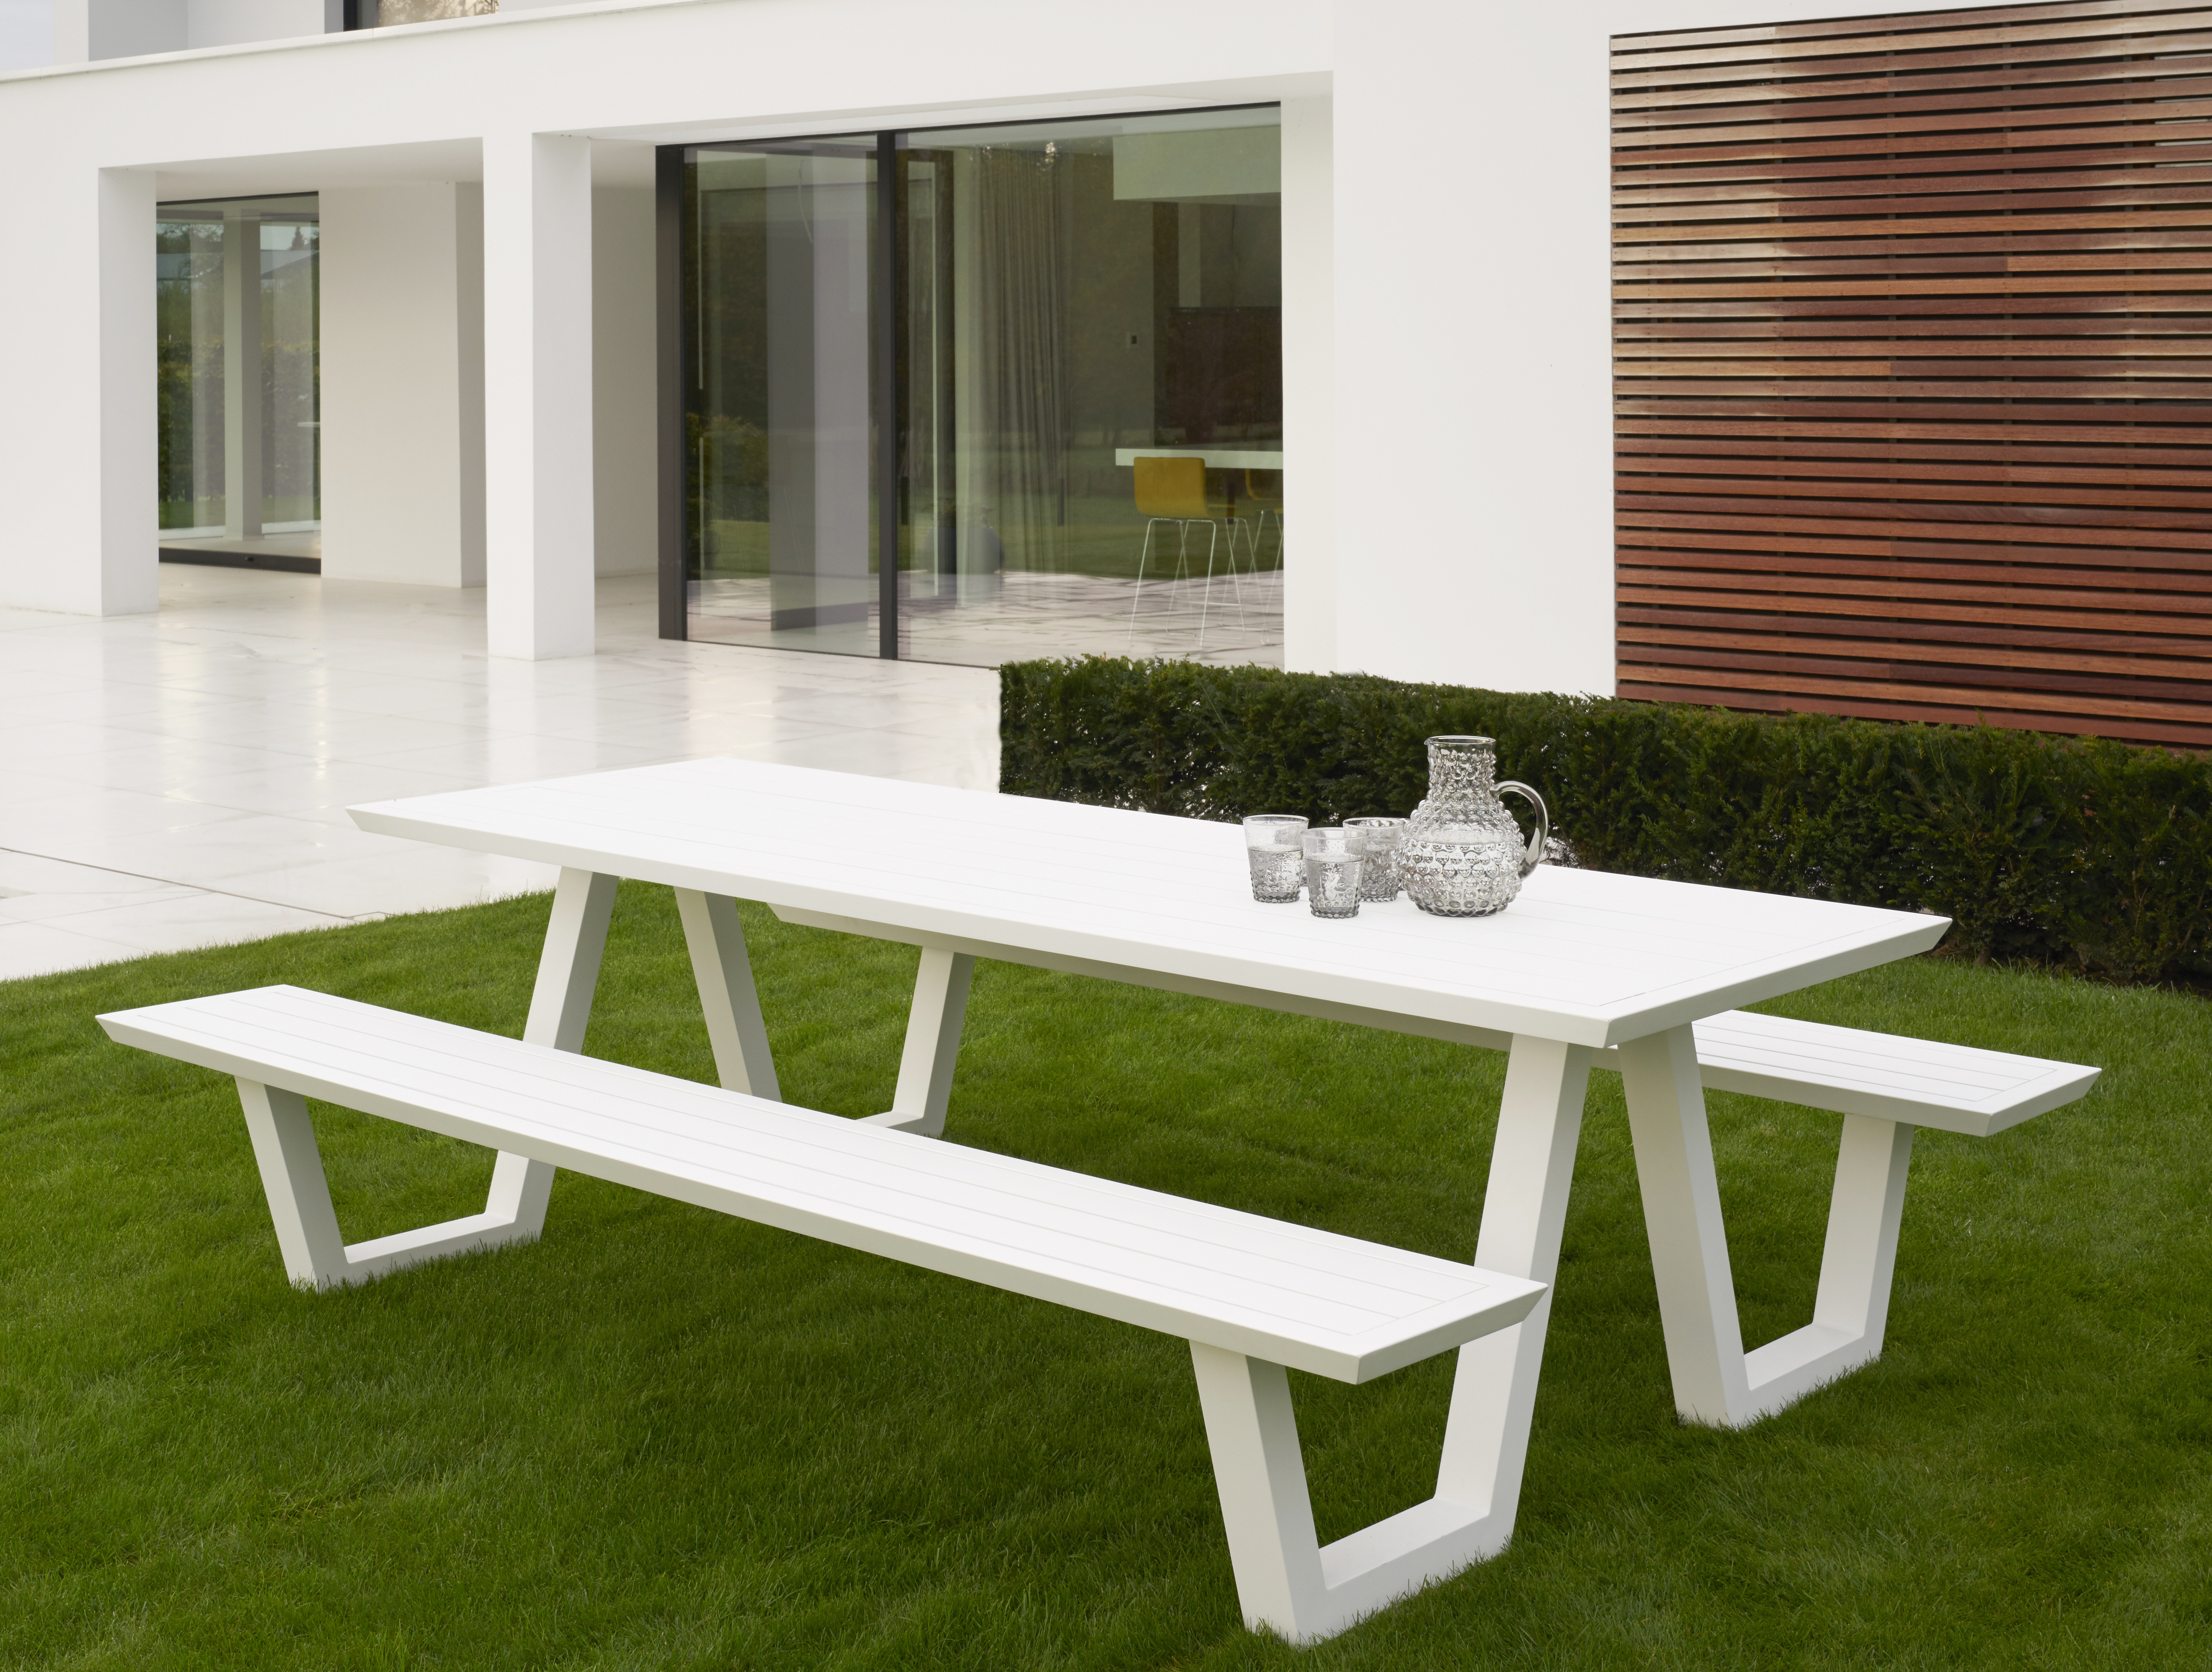 Peachy Aluminum Picnic Table Modern Power Coated Outdoor Furniture Ibusinesslaw Wood Chair Design Ideas Ibusinesslaworg